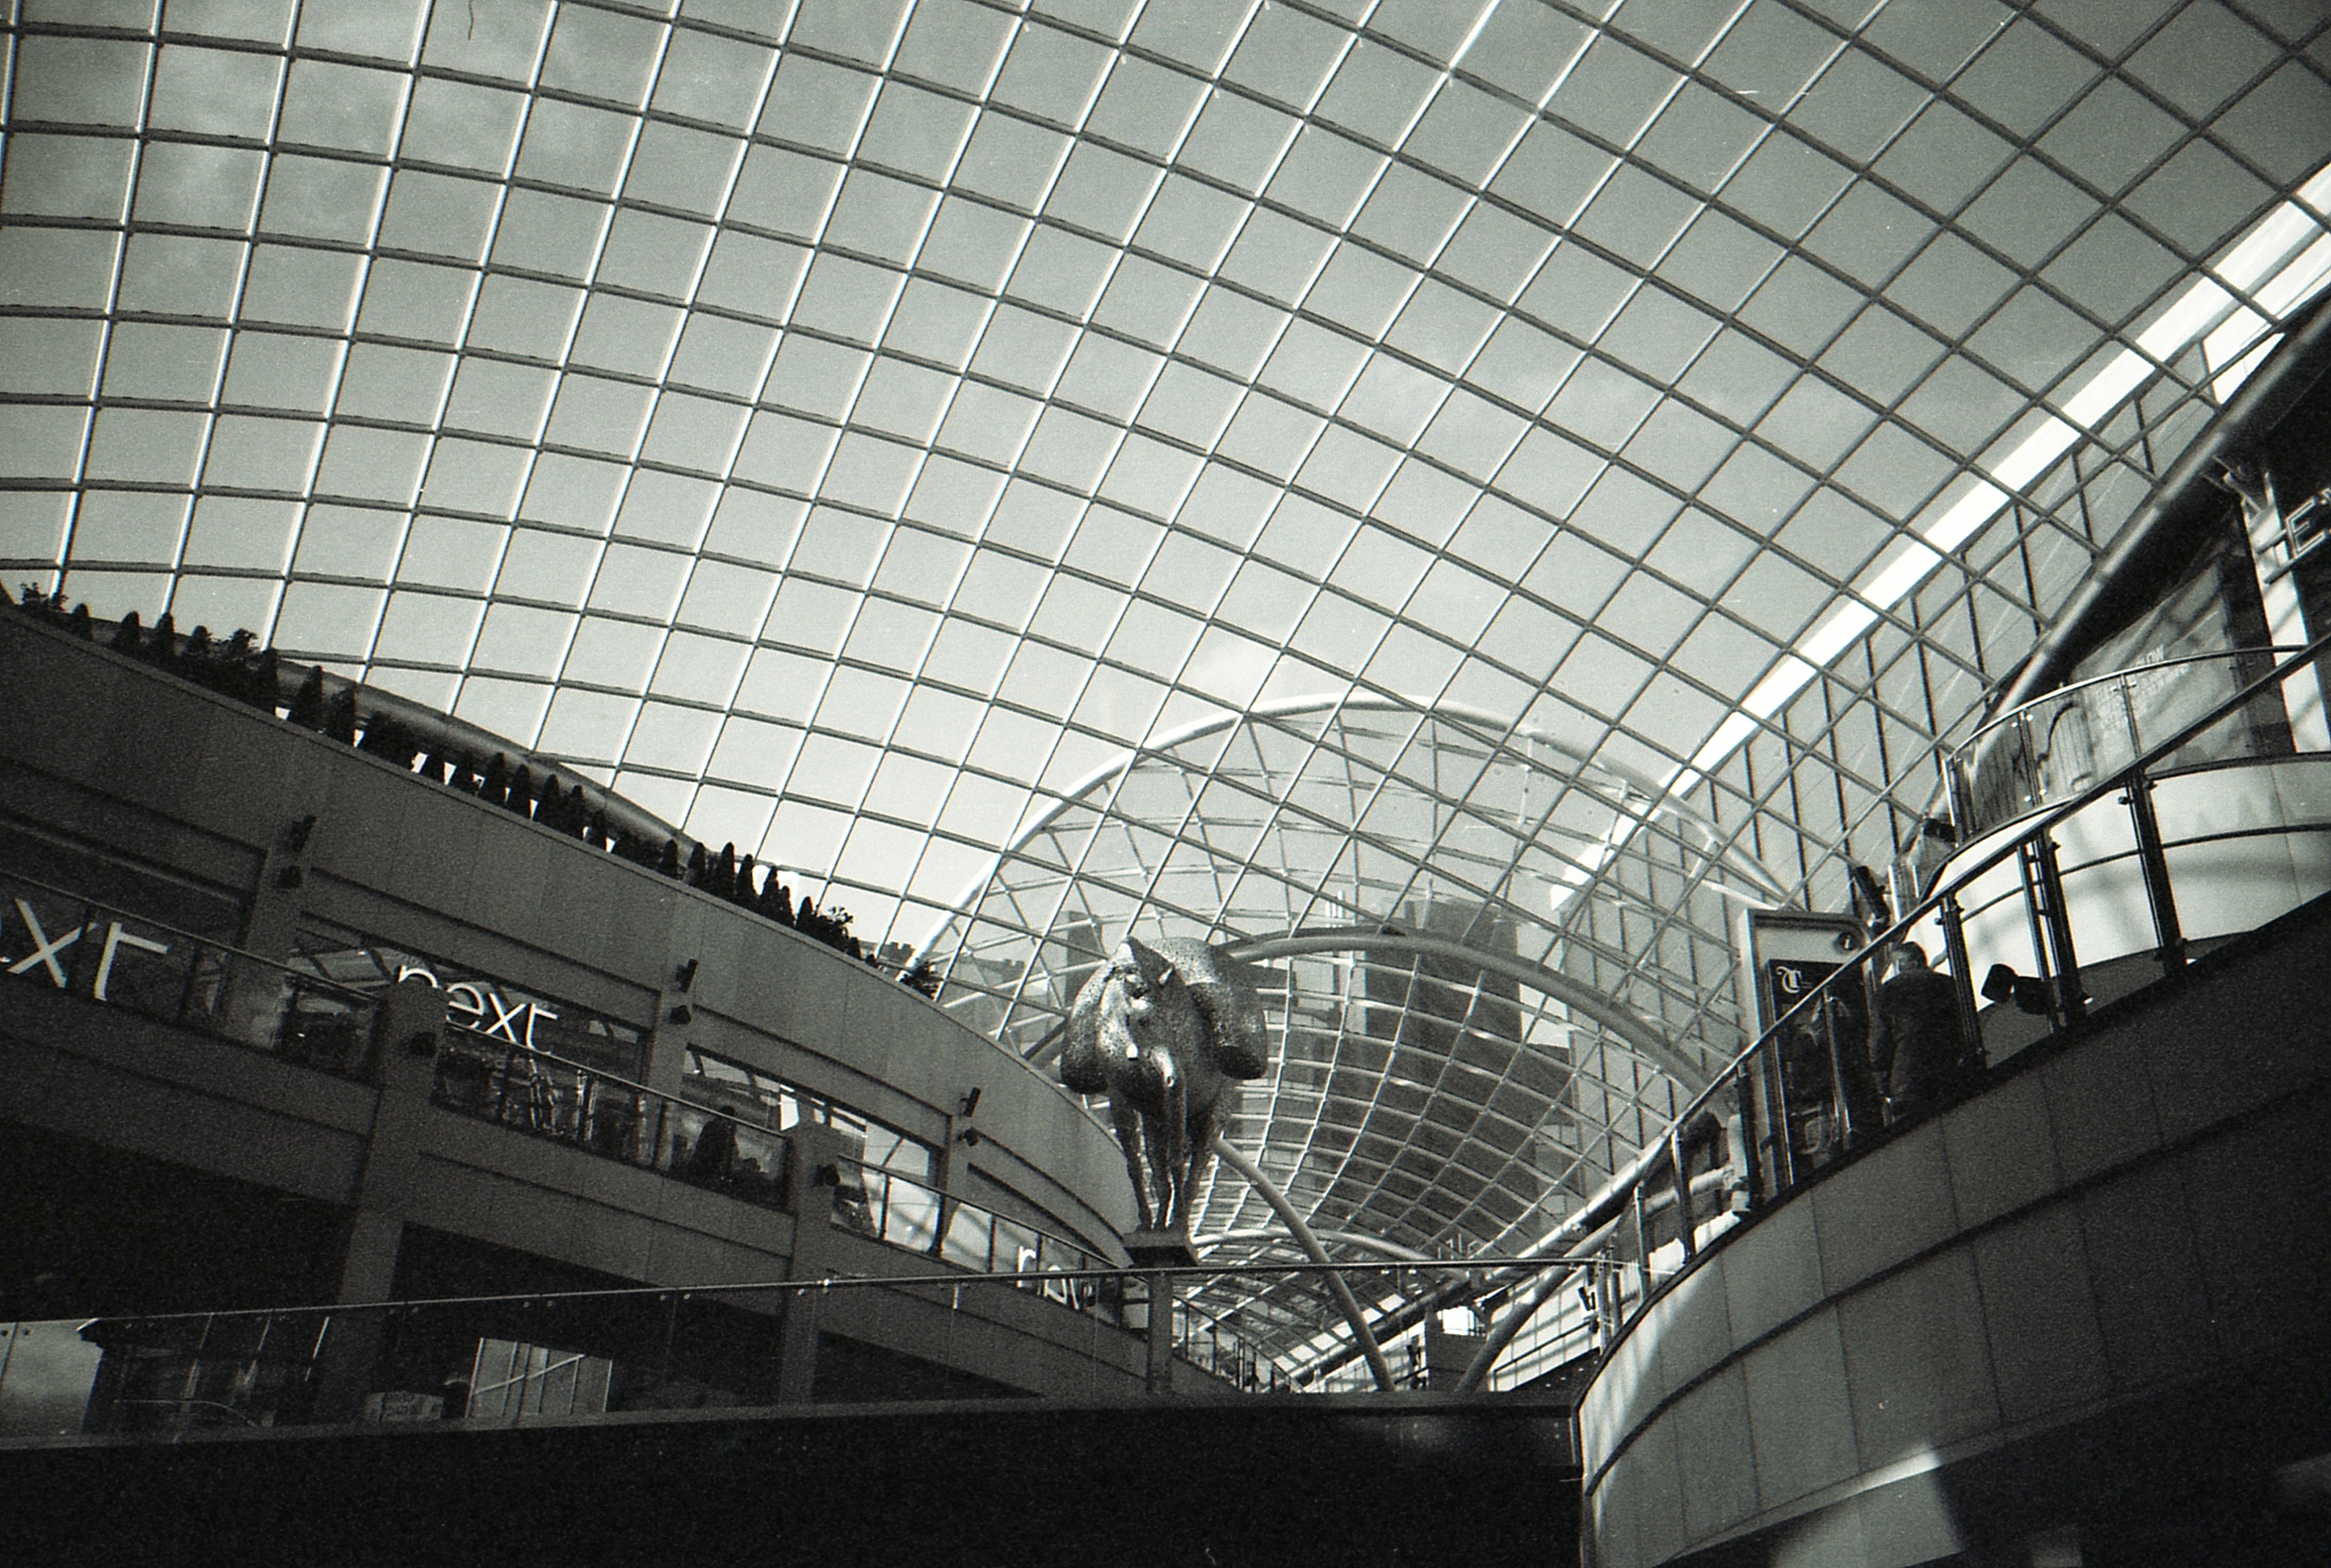 28/366 - The new Trinity shopping center in Leeds